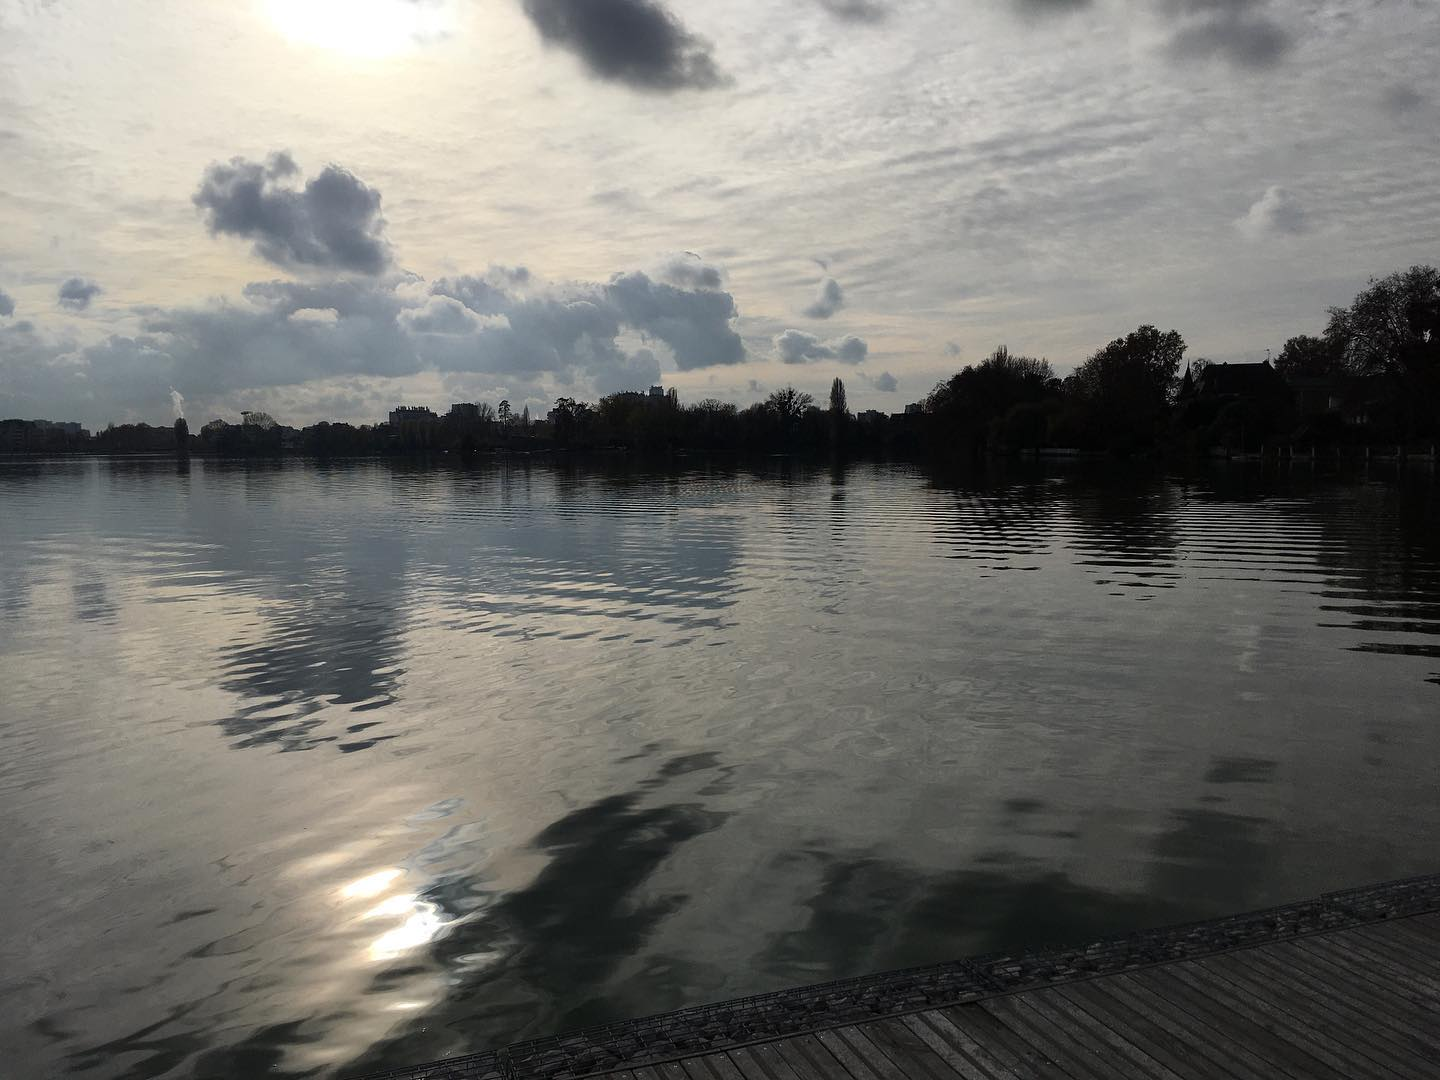 Lac d'Enghien (novembre 2020 - photo de Jean-Marie Brochard)